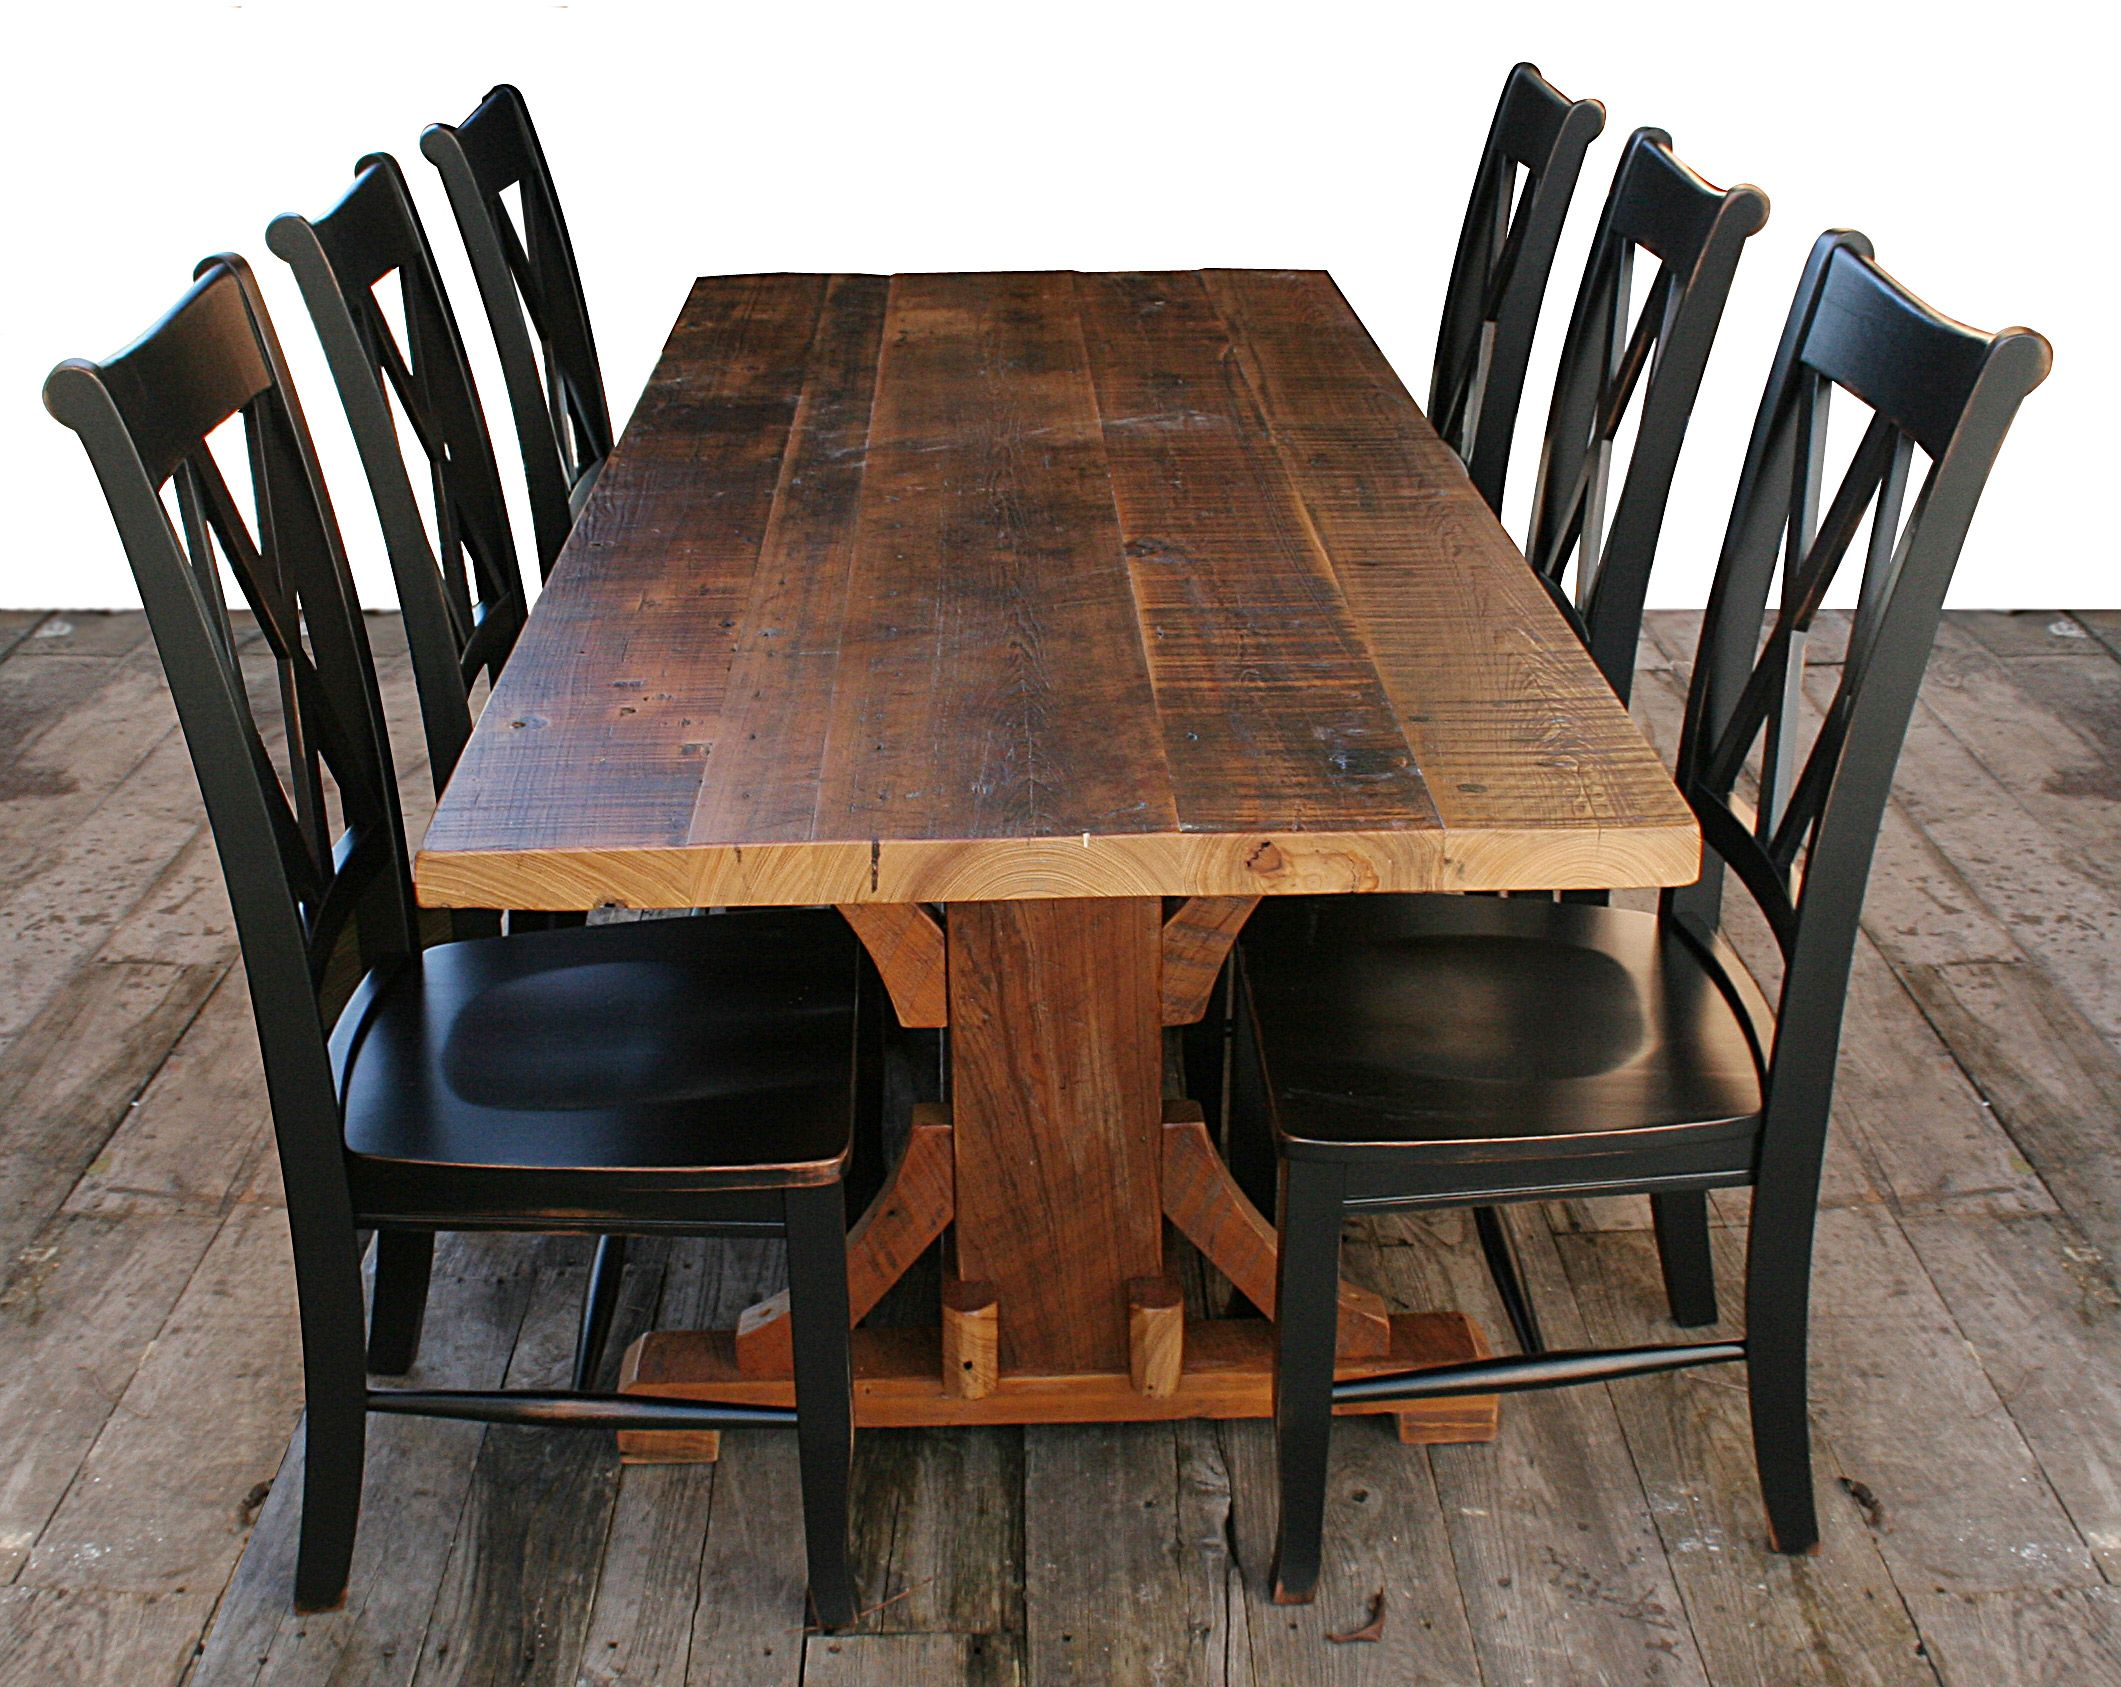 Cajun Timber Frame Tables | All Wood Furniture Incorporated | Handcrafted  Louisiana Cypress Furniture